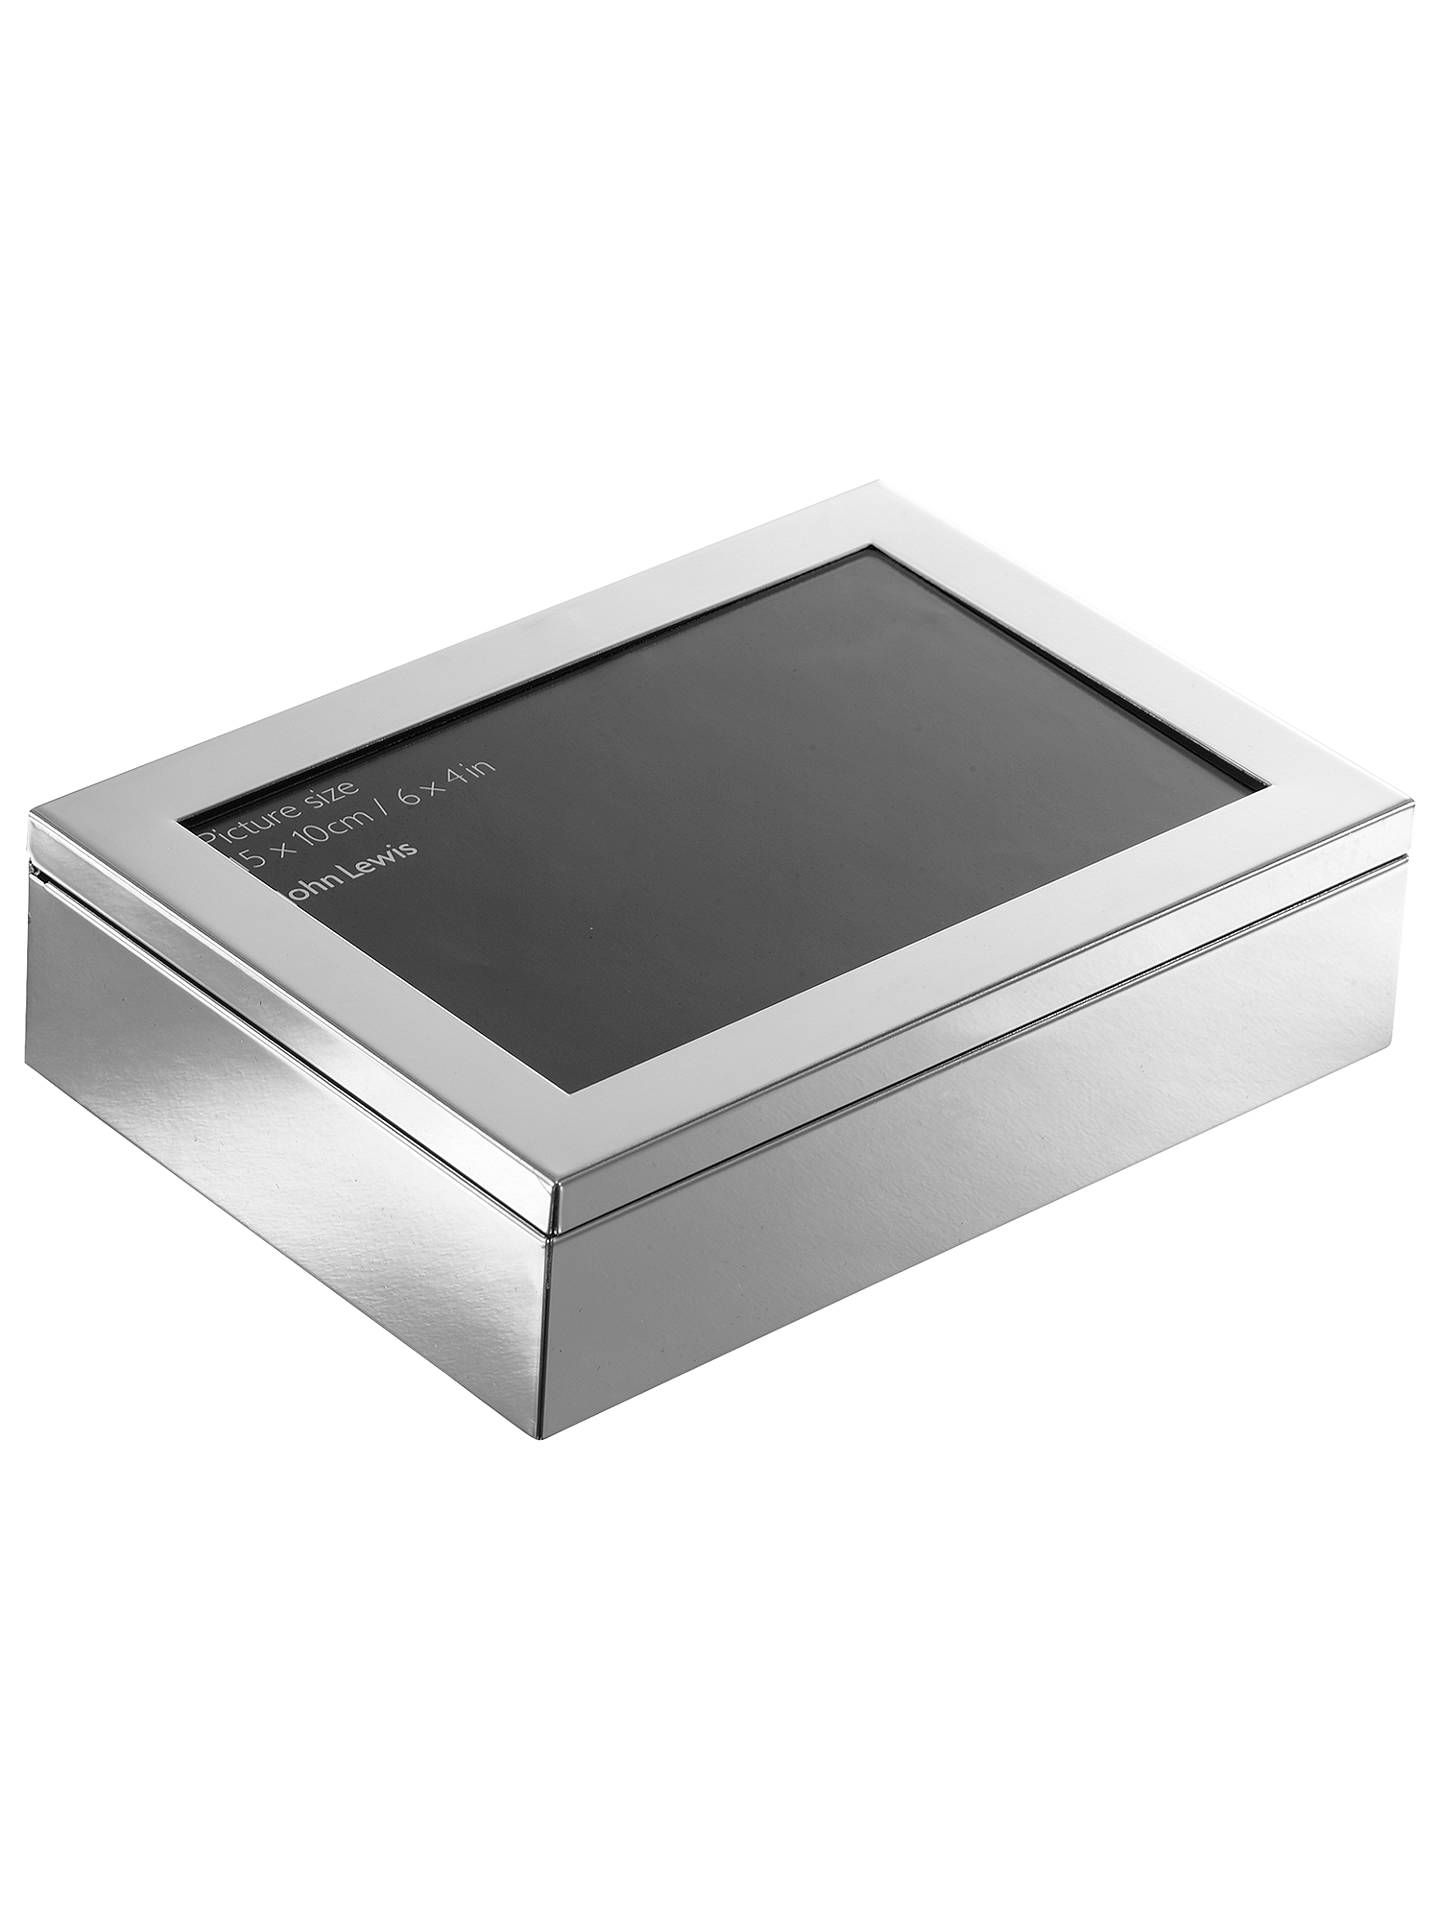 "Buy John Lewis & Partners Plane Photo Frame Box, 4 x 6"" (10 x 15cm), Silver Plated Online at johnlewis.com"